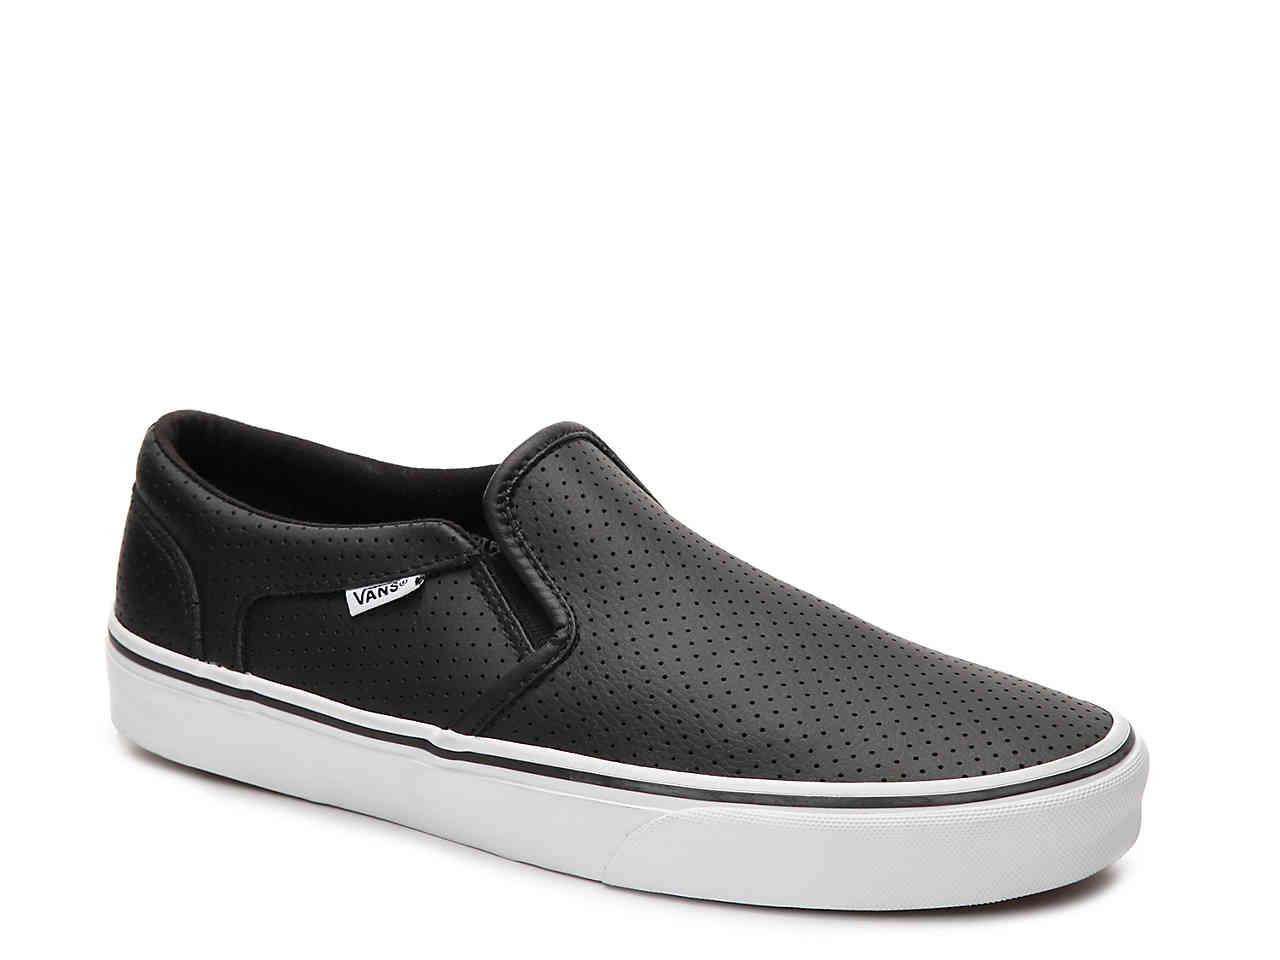 Vans Asher Perforated Leather Slip On Sneaker In Black For